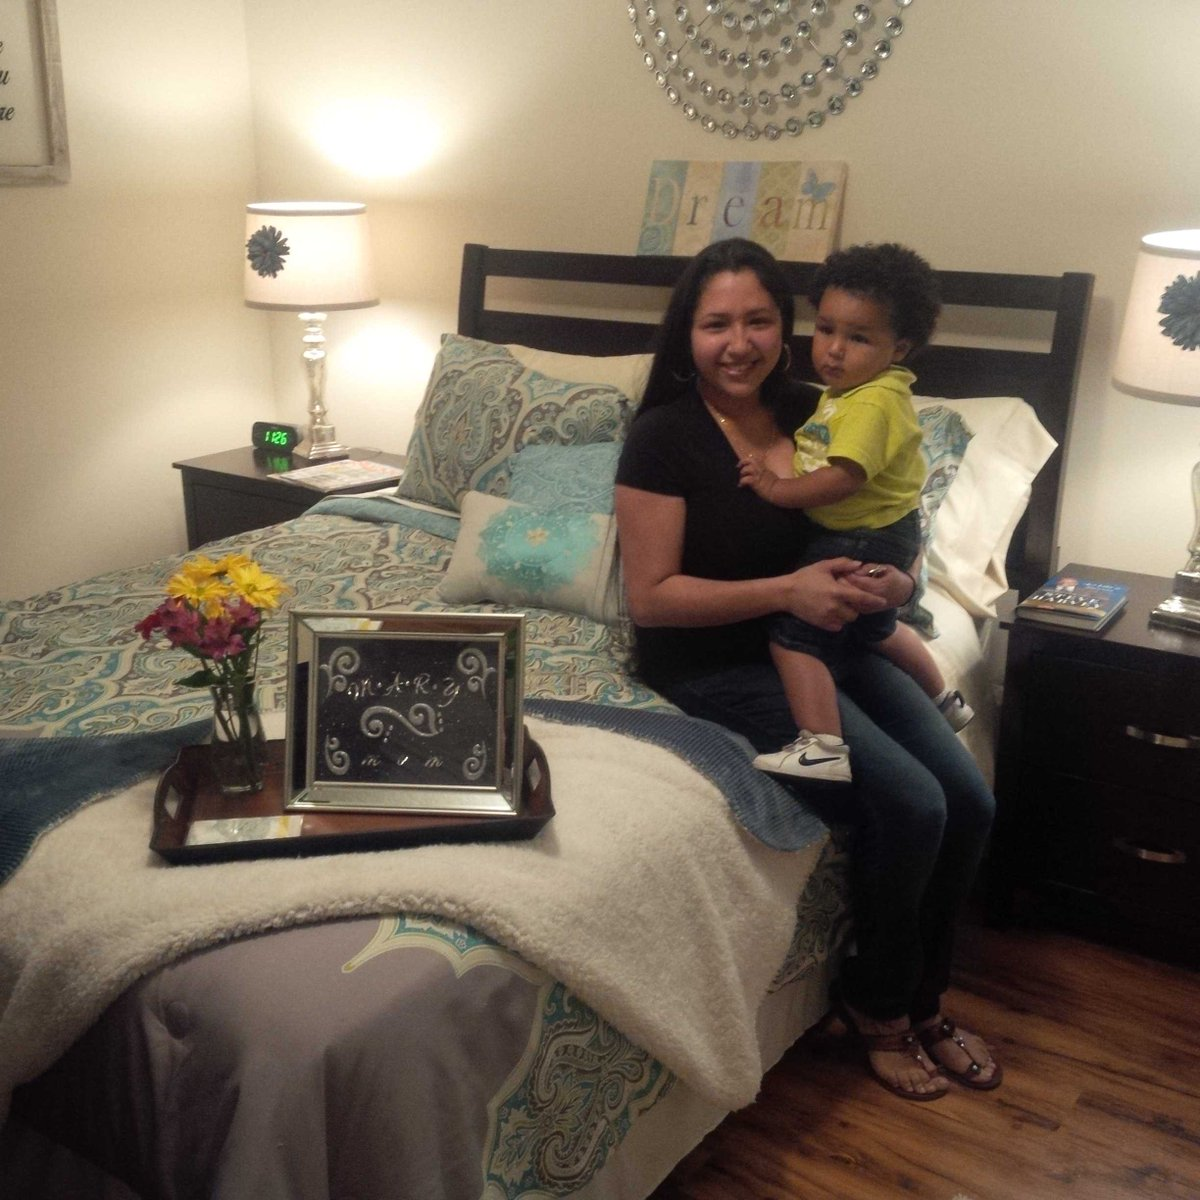 Family 140th for @WDCharities. Another dedicated parent experiences a life changing moment. Thankful http://t.co/KtUBBYtwU3